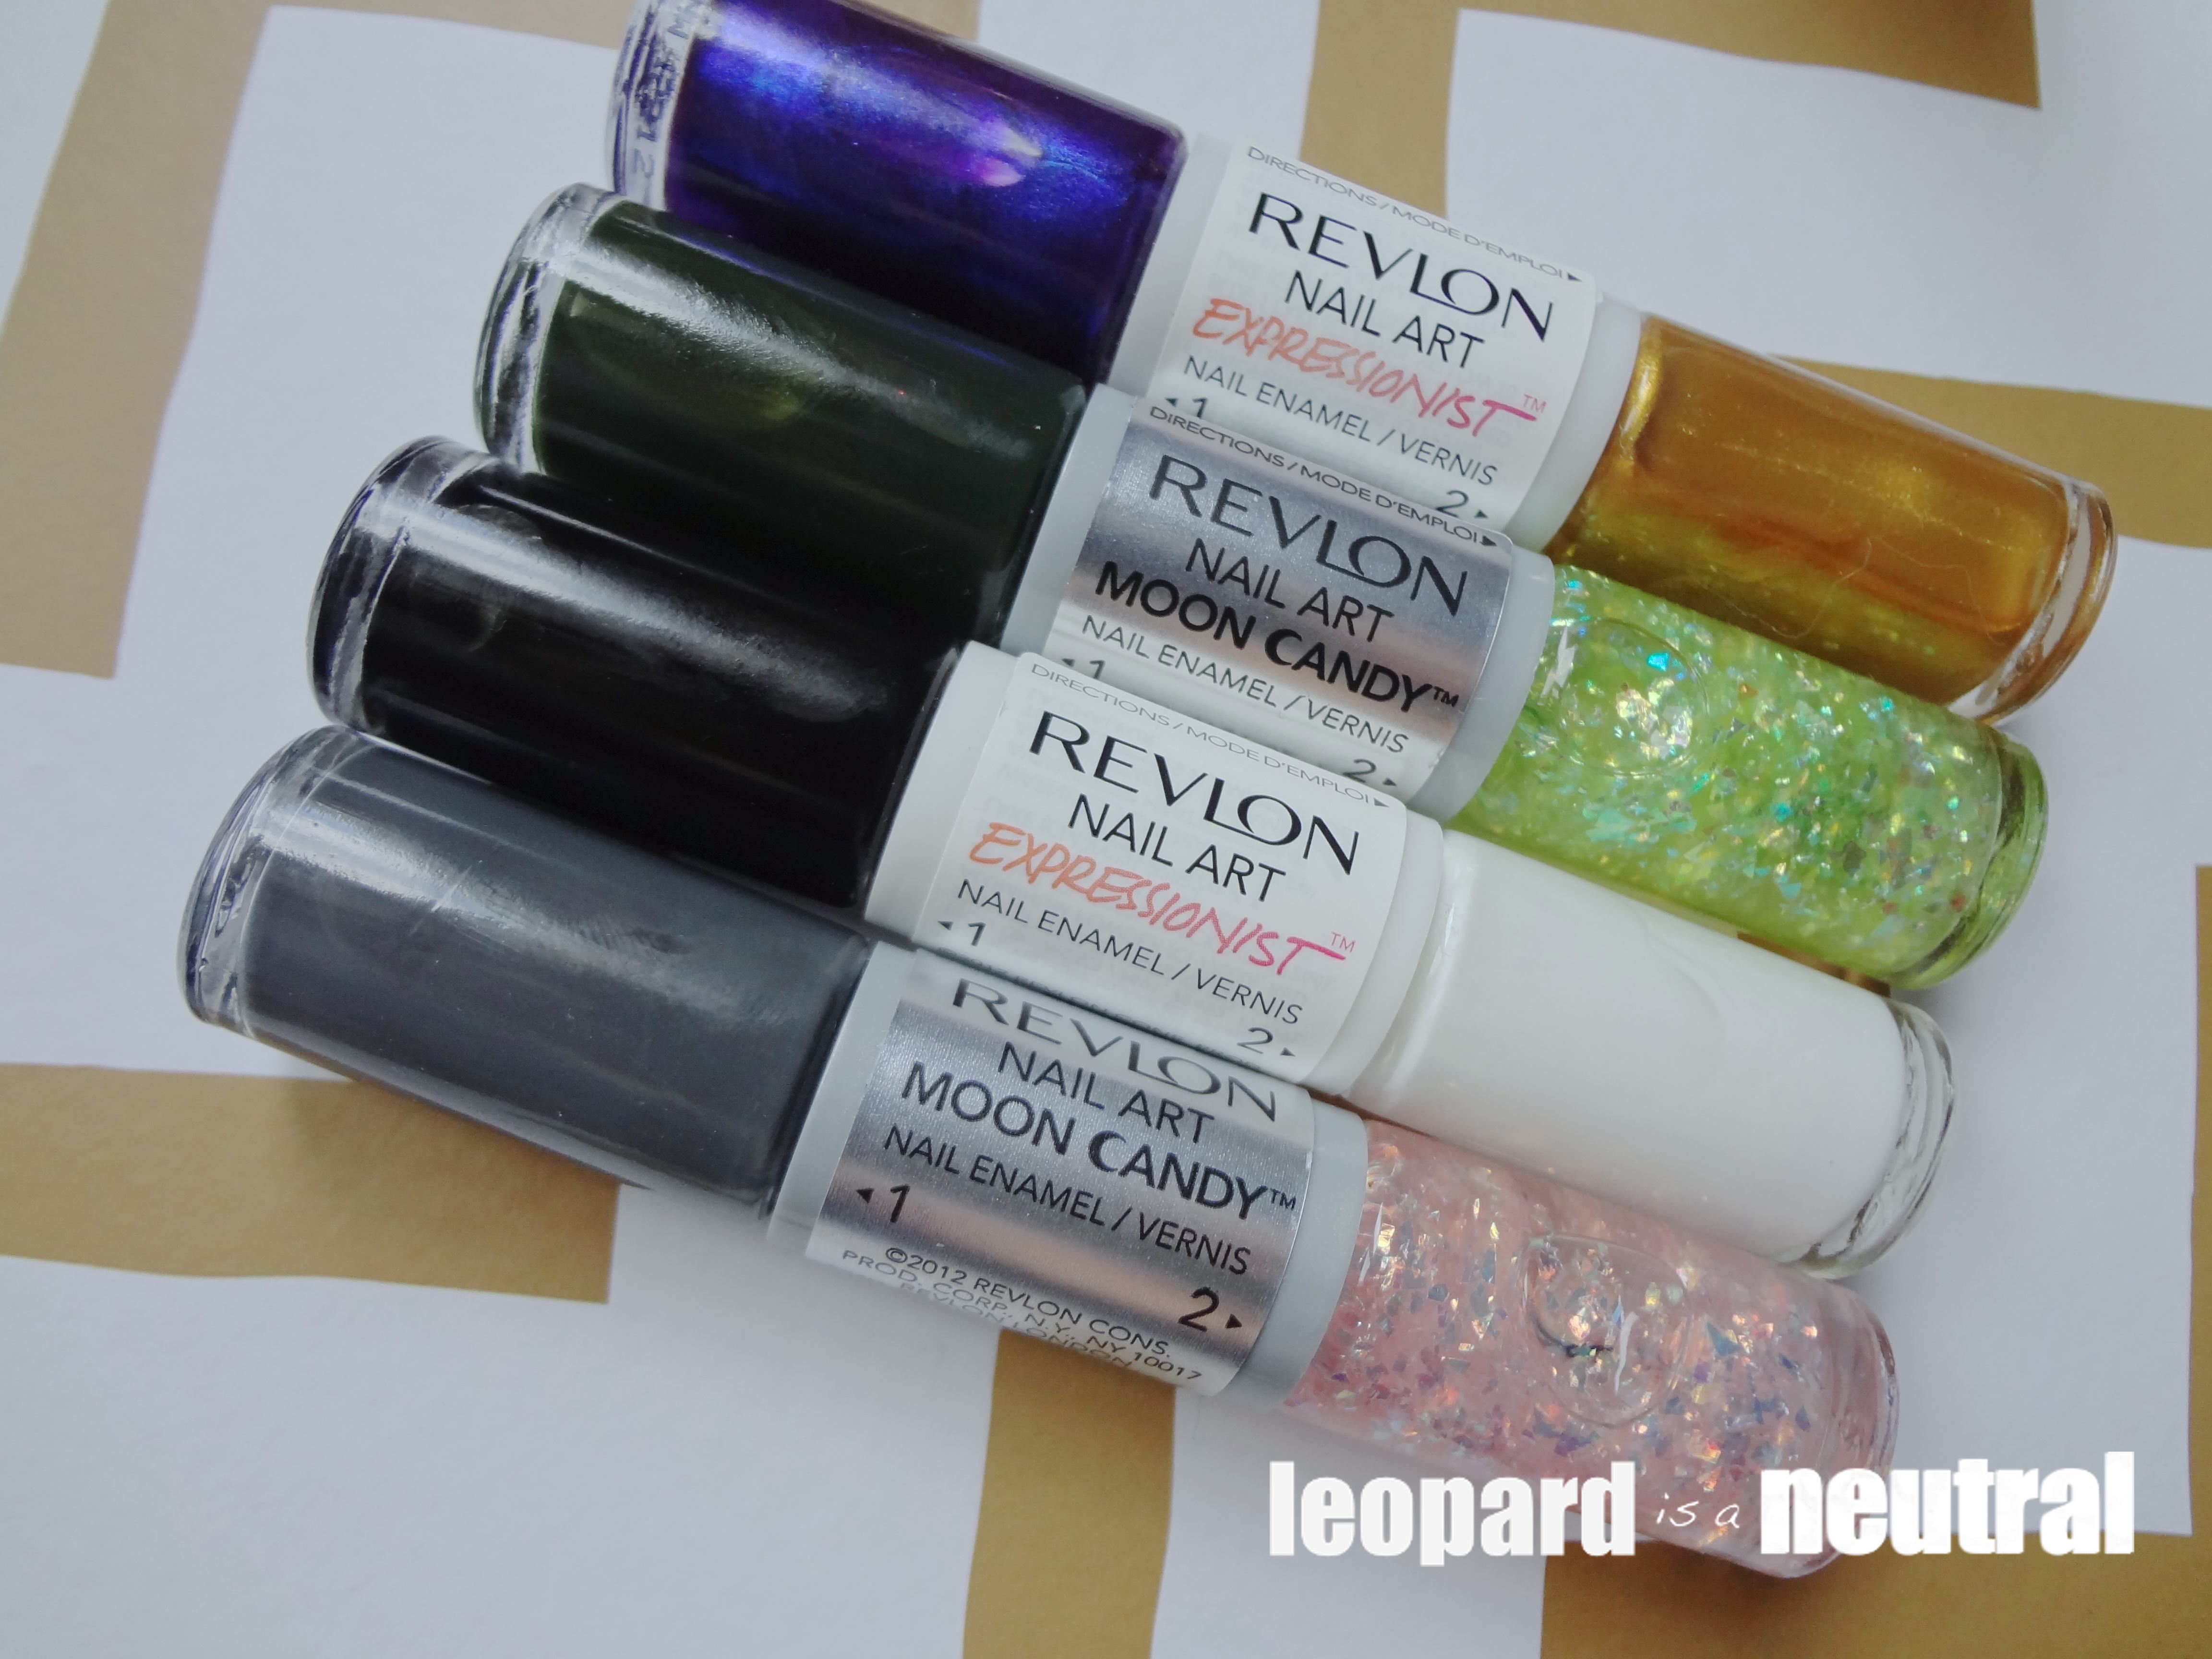 Nail art made simple: Revlon Nail Art Expressionist + Moon Candy ...